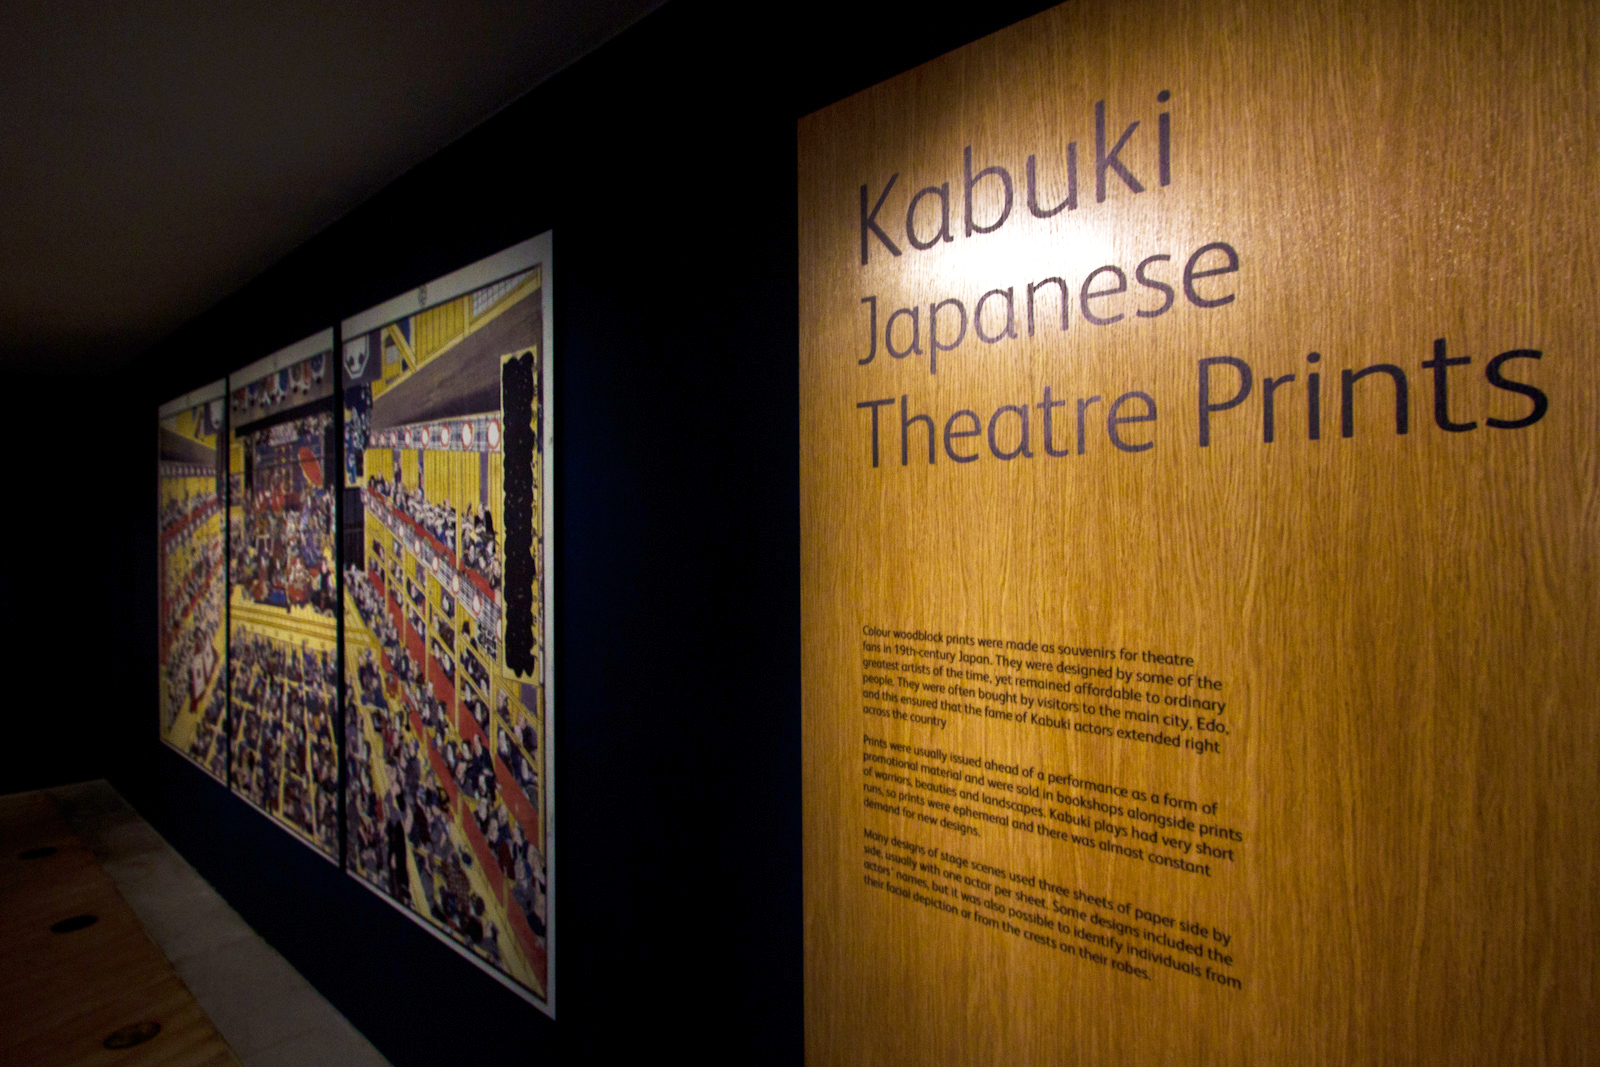 Edinburgh Exhibition Kabuki Japanese Theatre Prints